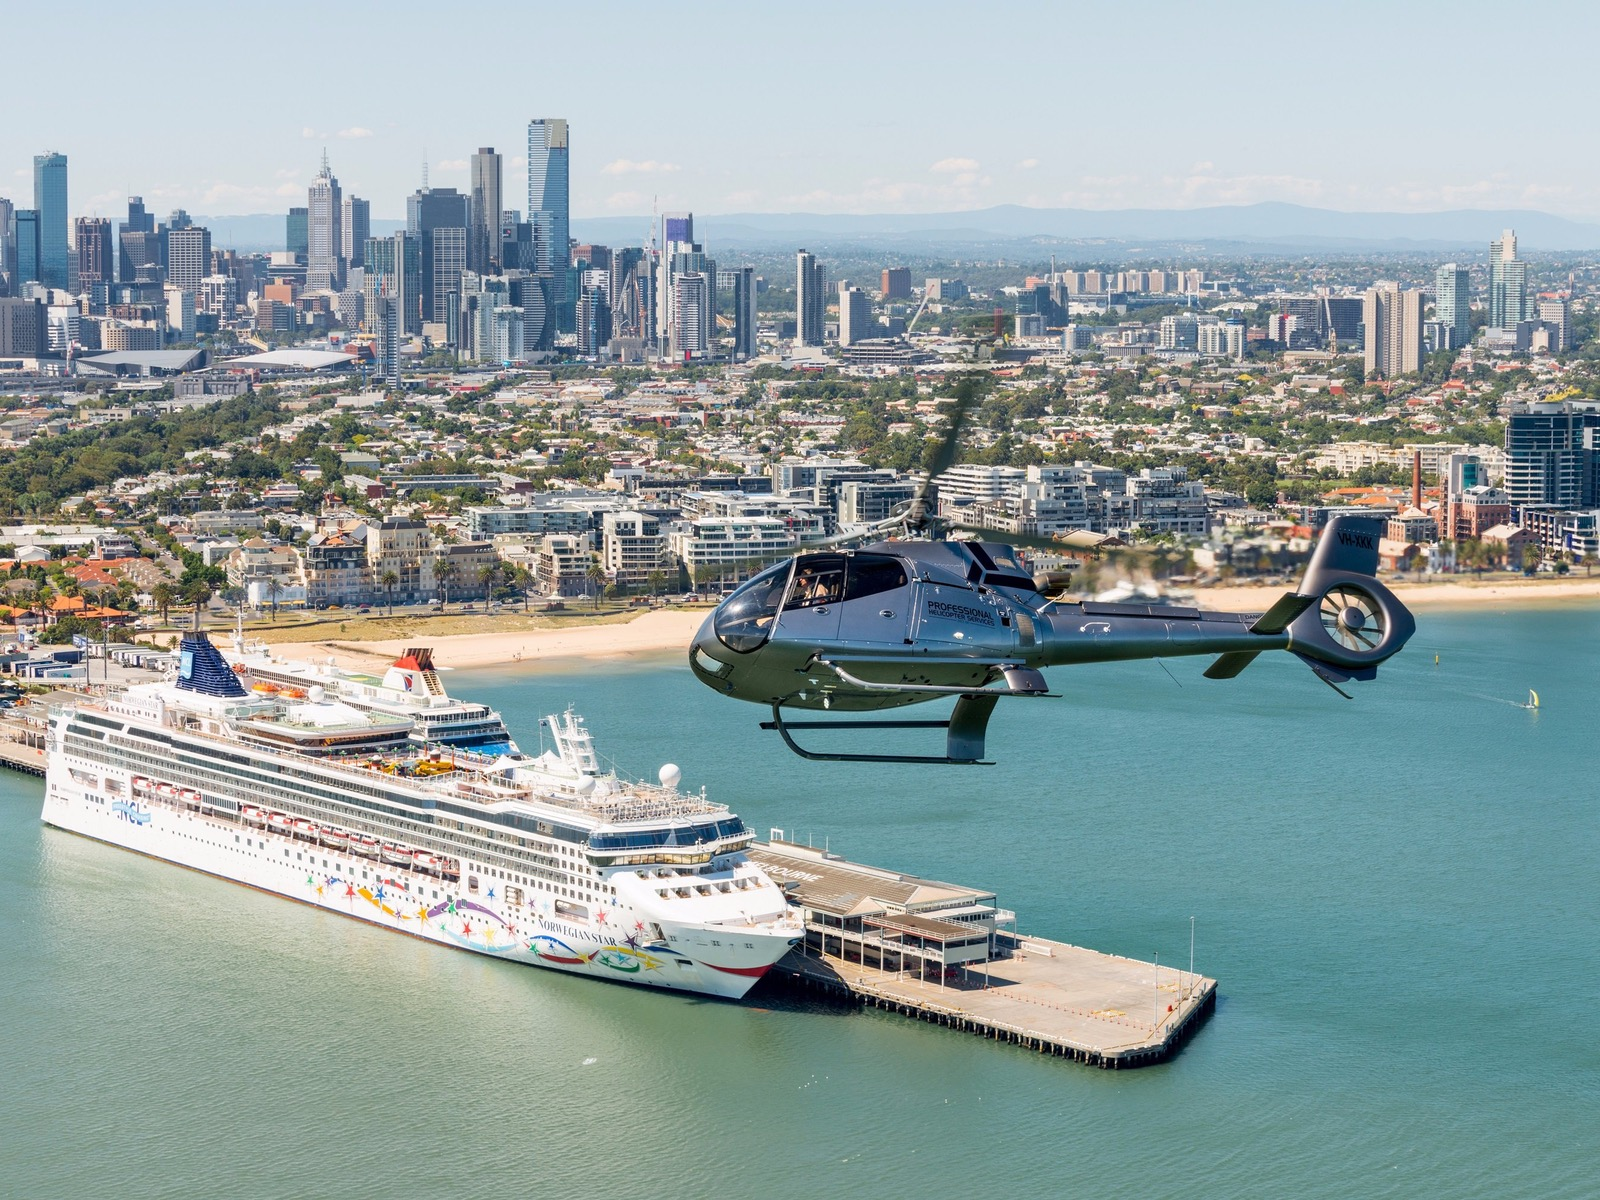 The best views of Melbourne